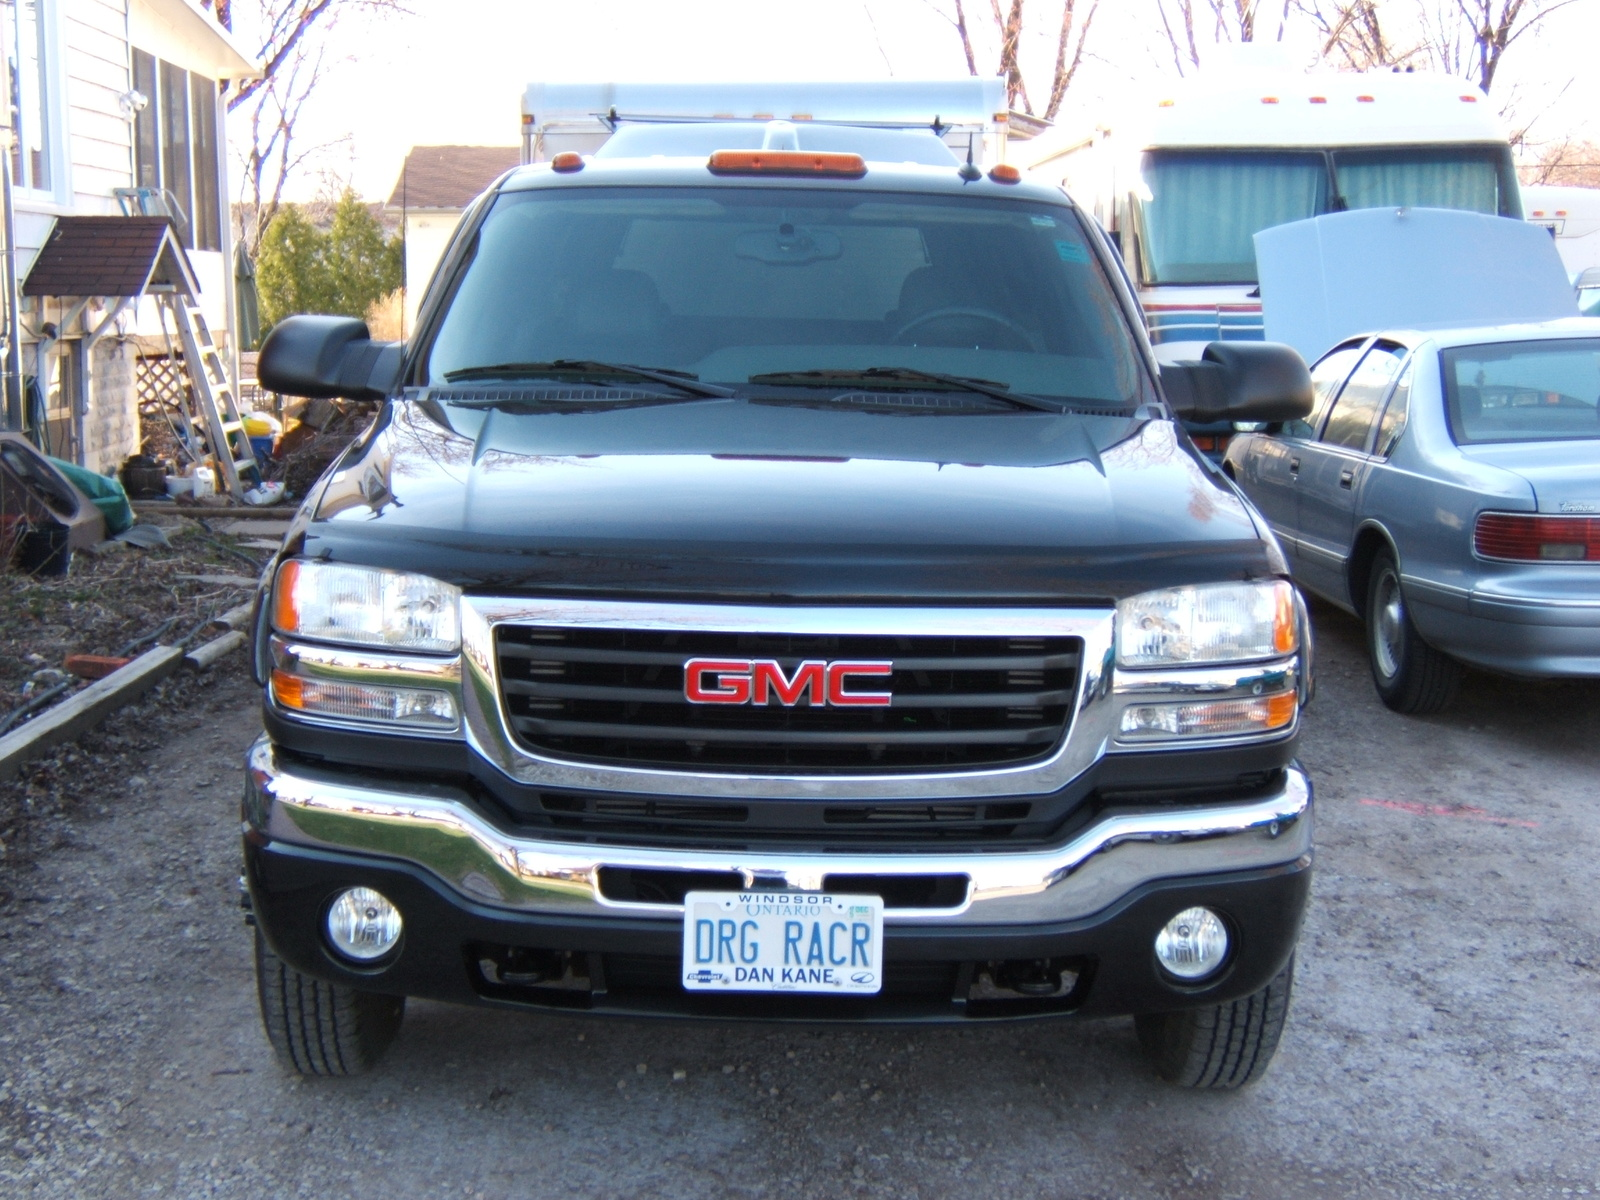 Gmc Acadia in addition 119959 Truck Fixed Roll Pan as well Gmc 20sierra 202014 20single 20cab 20accessories together with Bmw e39 ukraine 6 artykul 71246 13 together with Aston. on 2006 gmc sierra